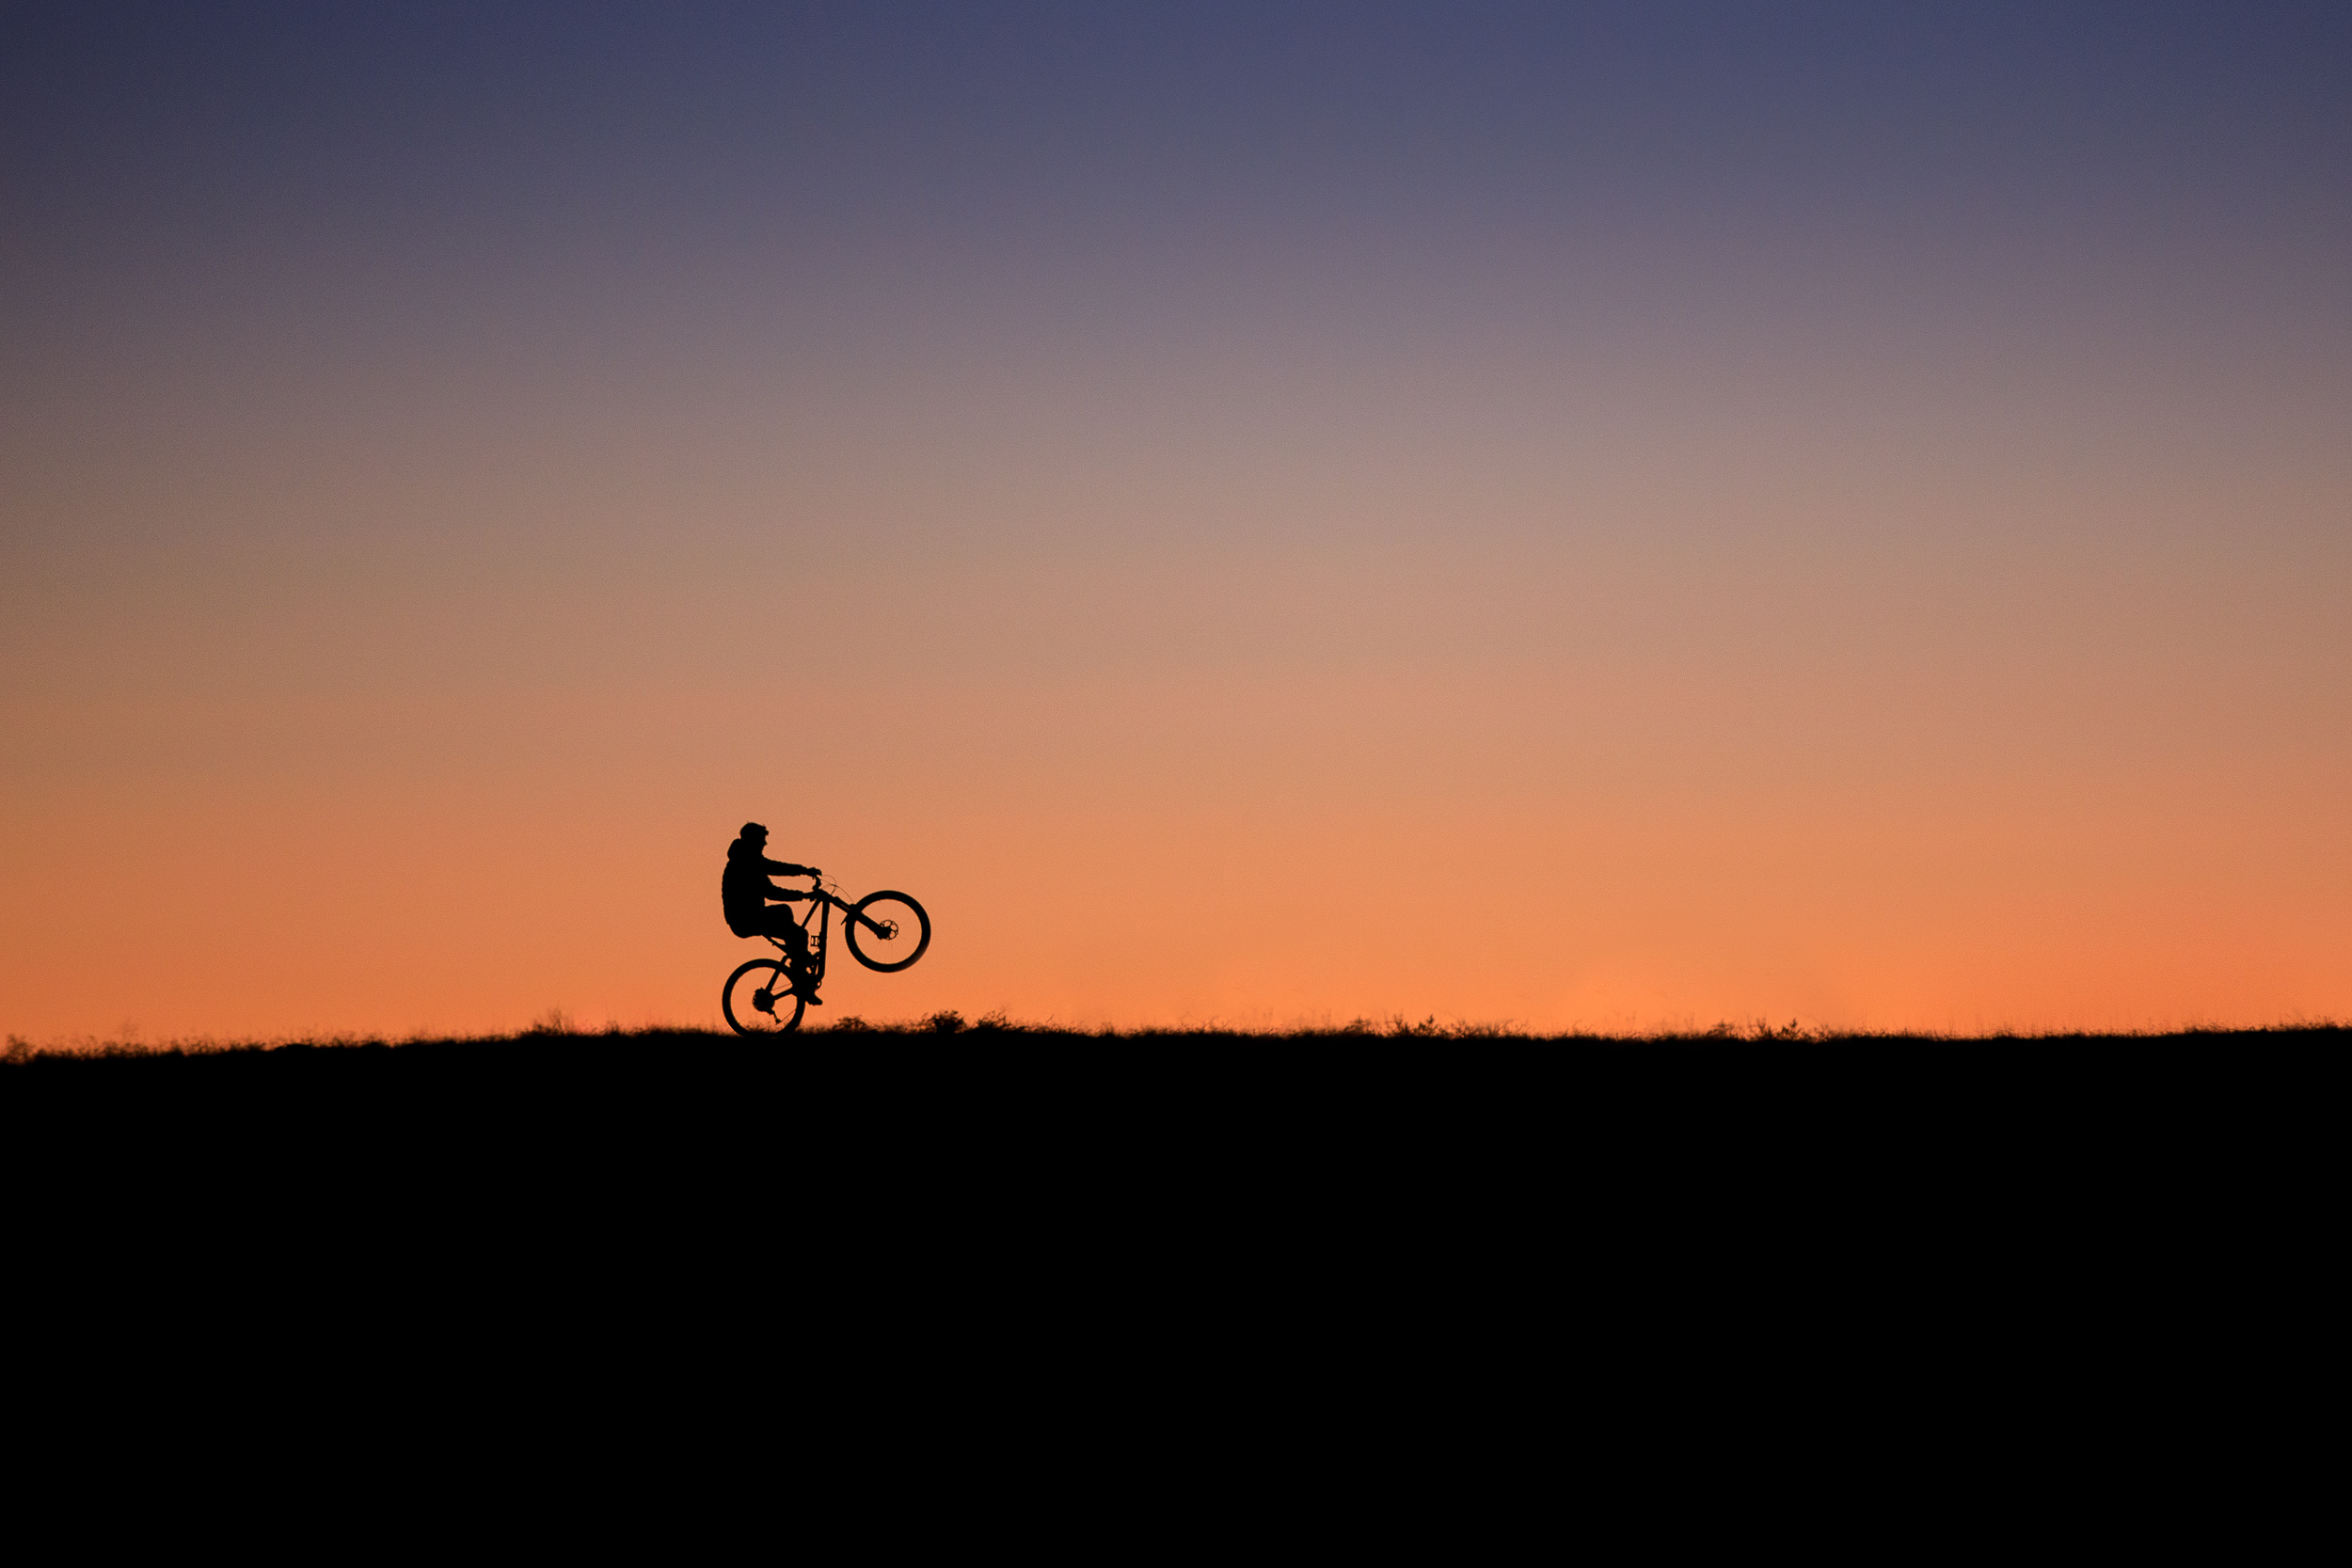 Mountain biker doing a wheelie silhouetted against the sunset in Fruita Colorado.